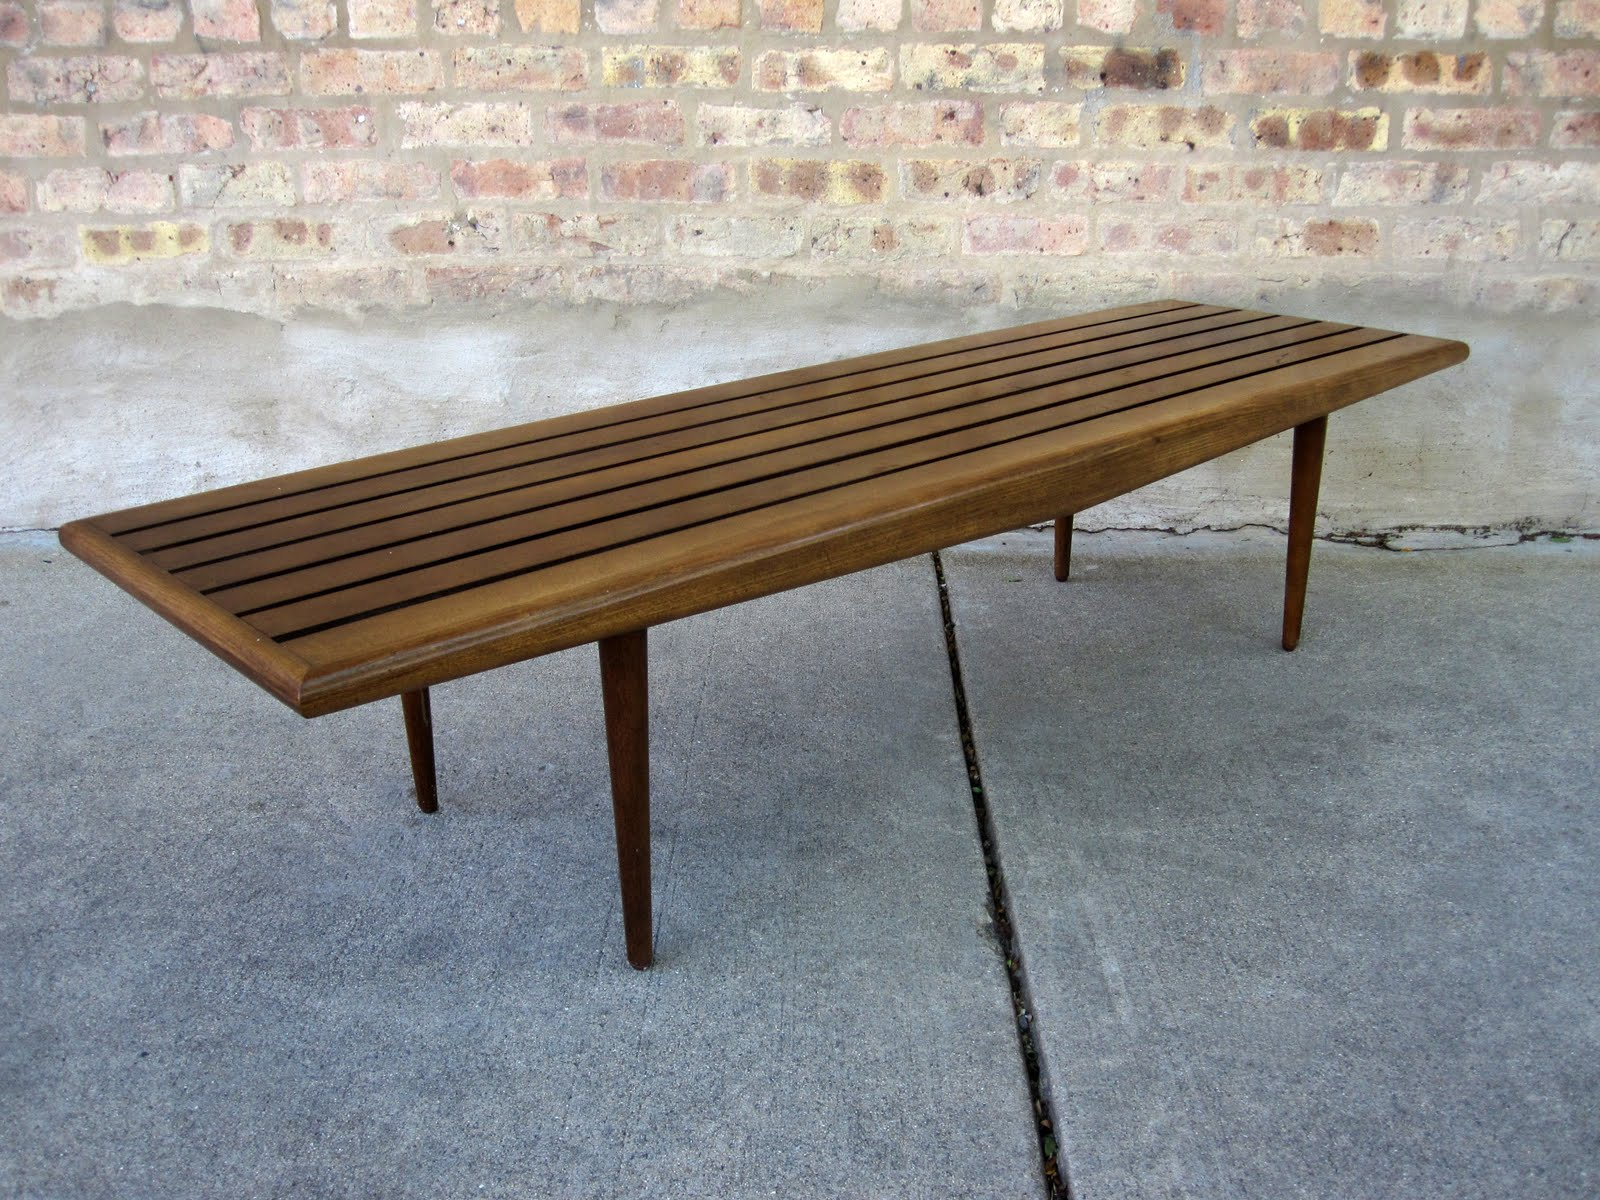 Accessories & Furniture Reclaimed Build A Wooden Bench Furniture